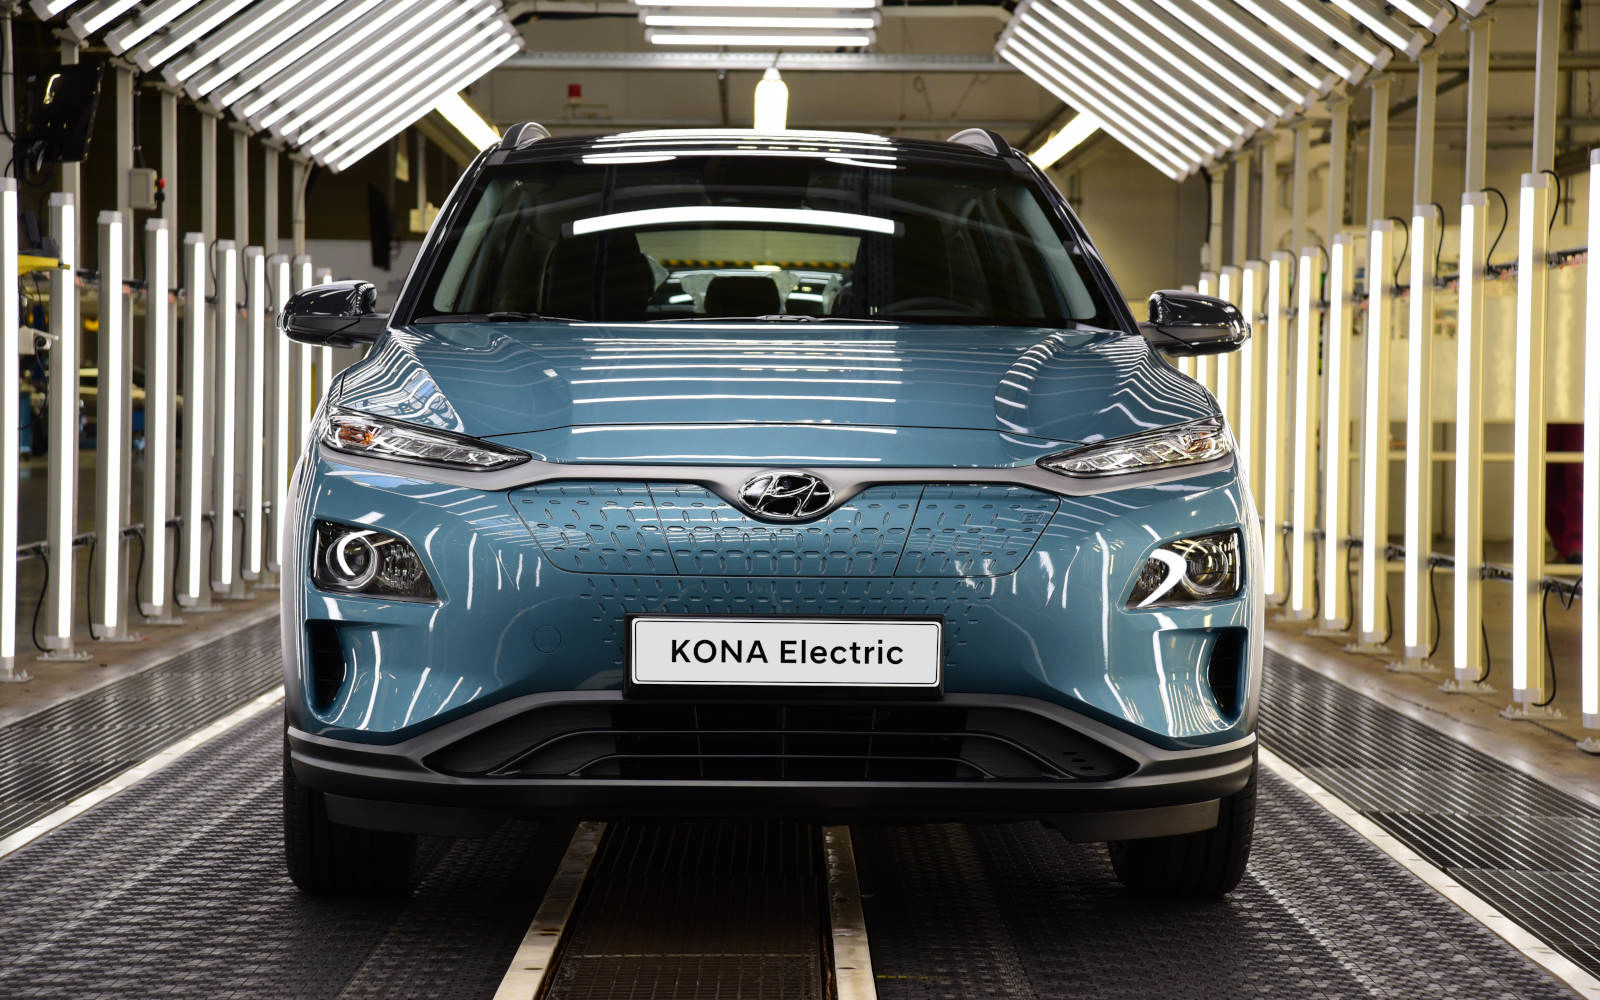 csm_hyundai-boosts-kona-electric-supply-02-1610_08d69a8860